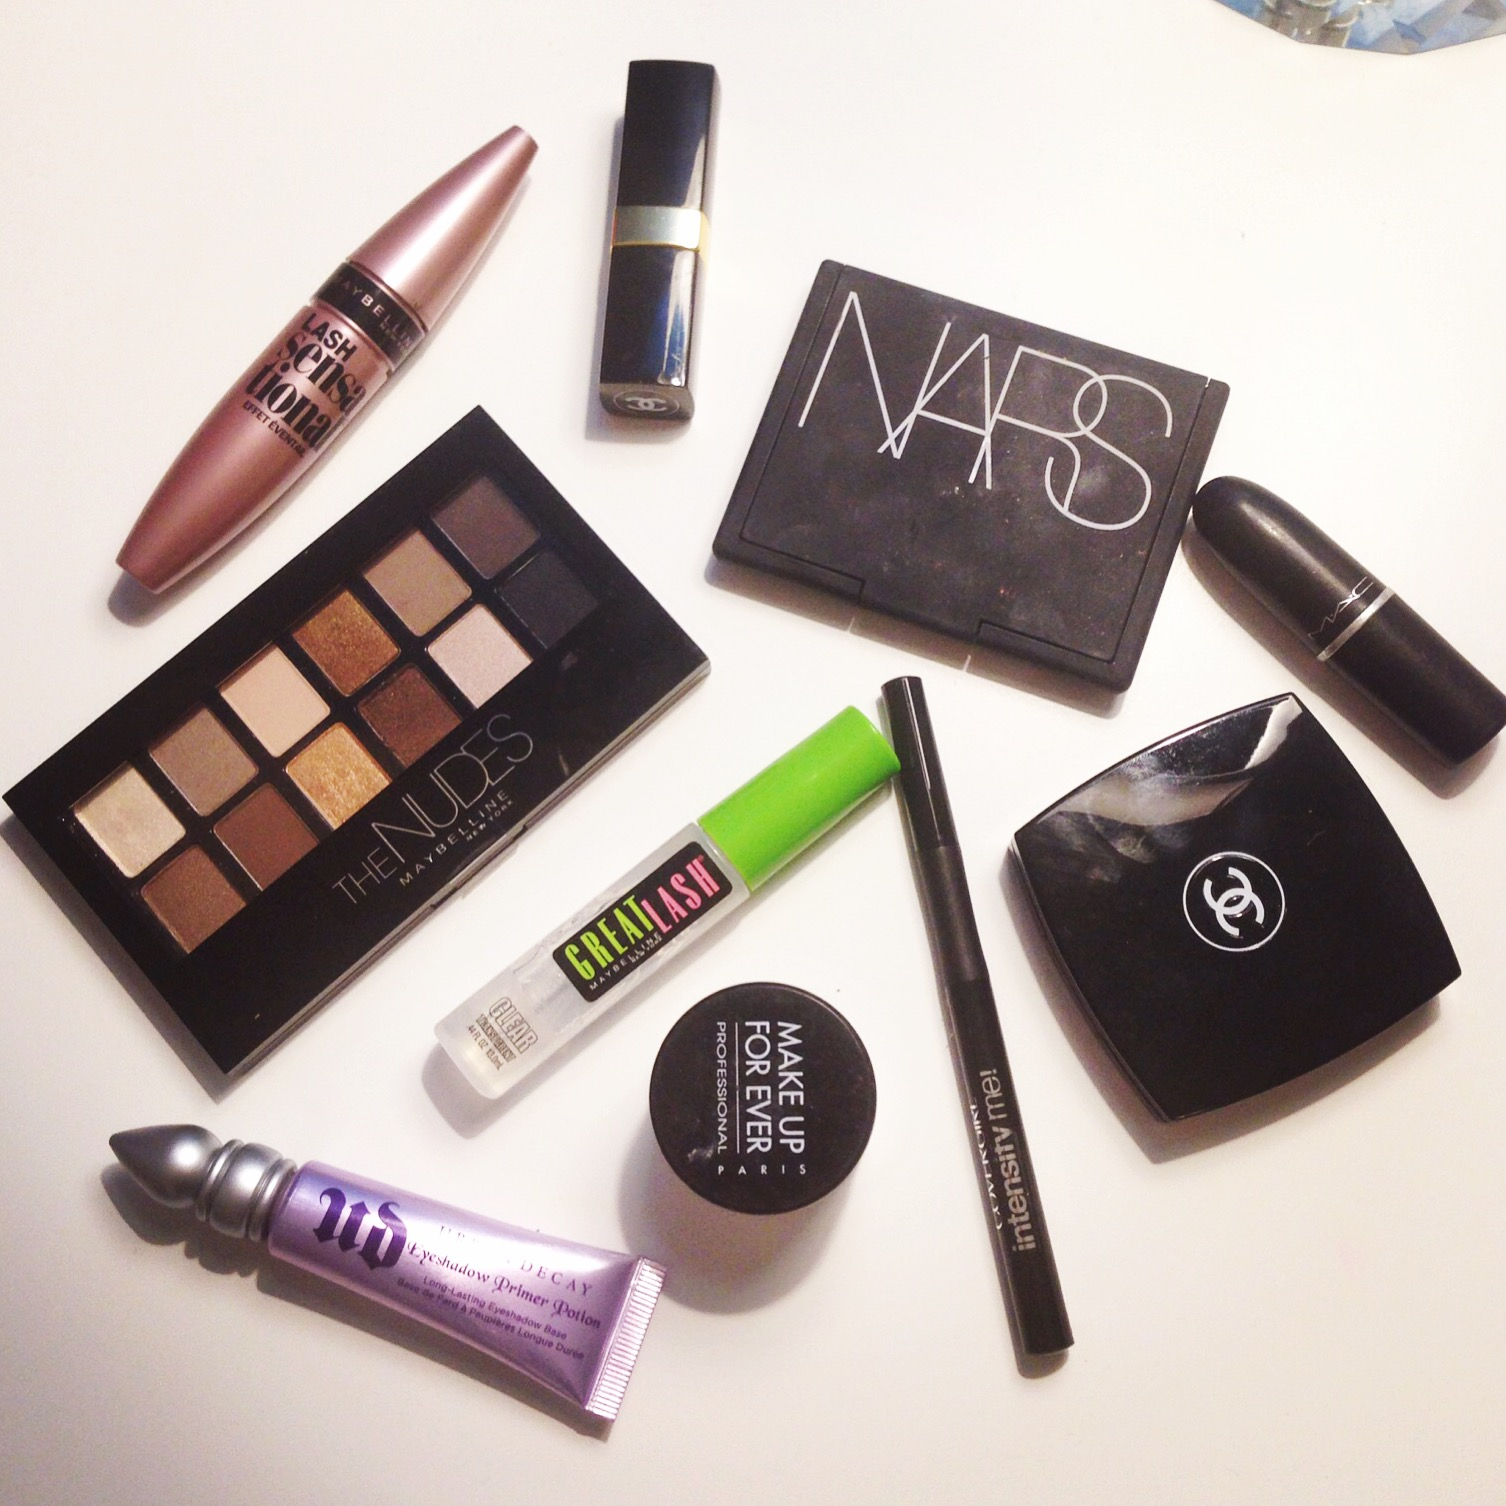 REVIEW: Favorite Makeup Products of 2015!